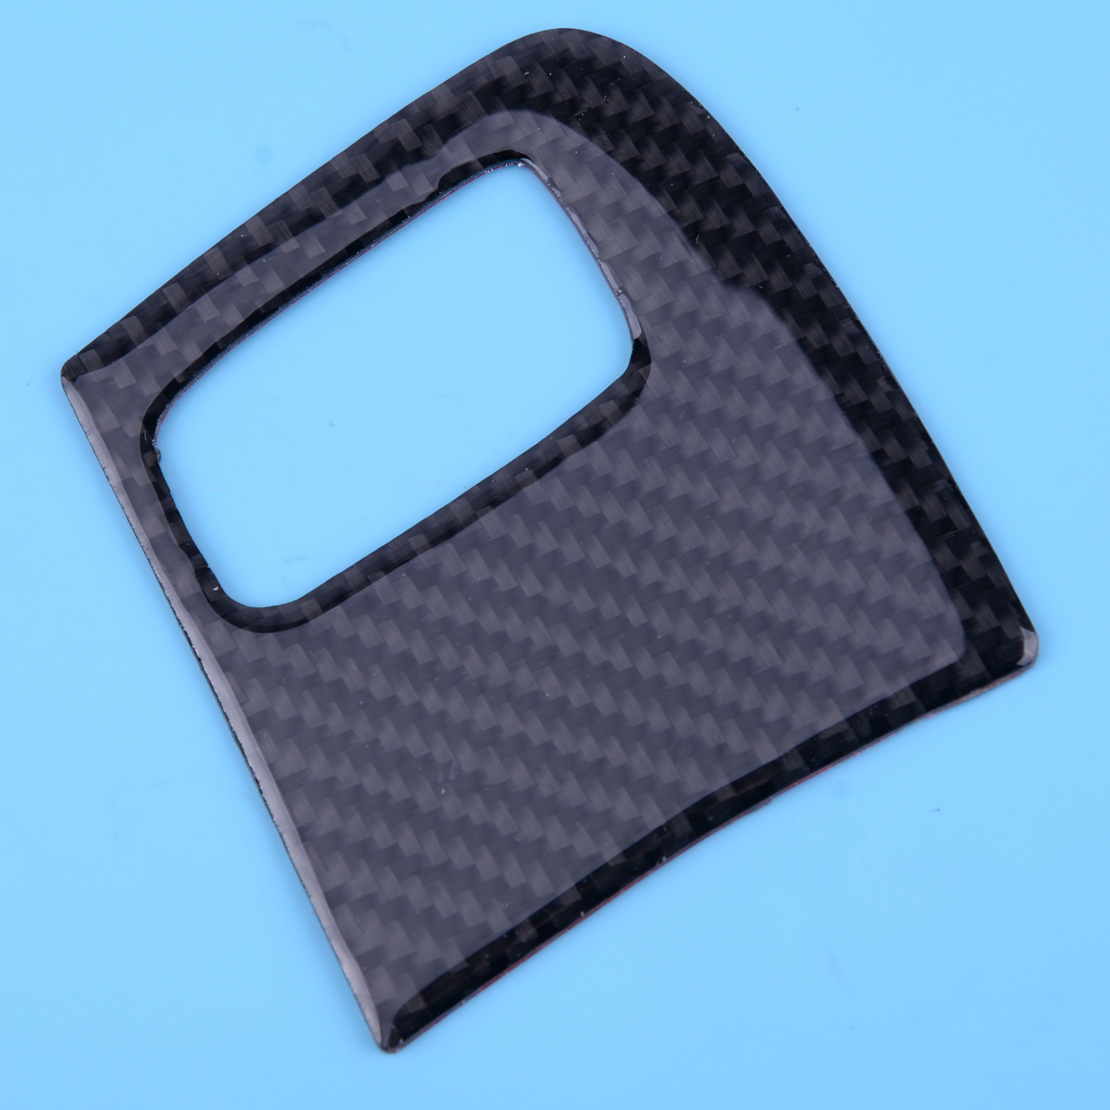 Carbon Fiber Engine Start Key Hole Panel Cover Trim Sticker Fit for <font><b>Audi</b></font> <font><b>A4</b></font> B8 2009 2010 2011 2012 <font><b>2013</b></font> 2014 2015 2016 image